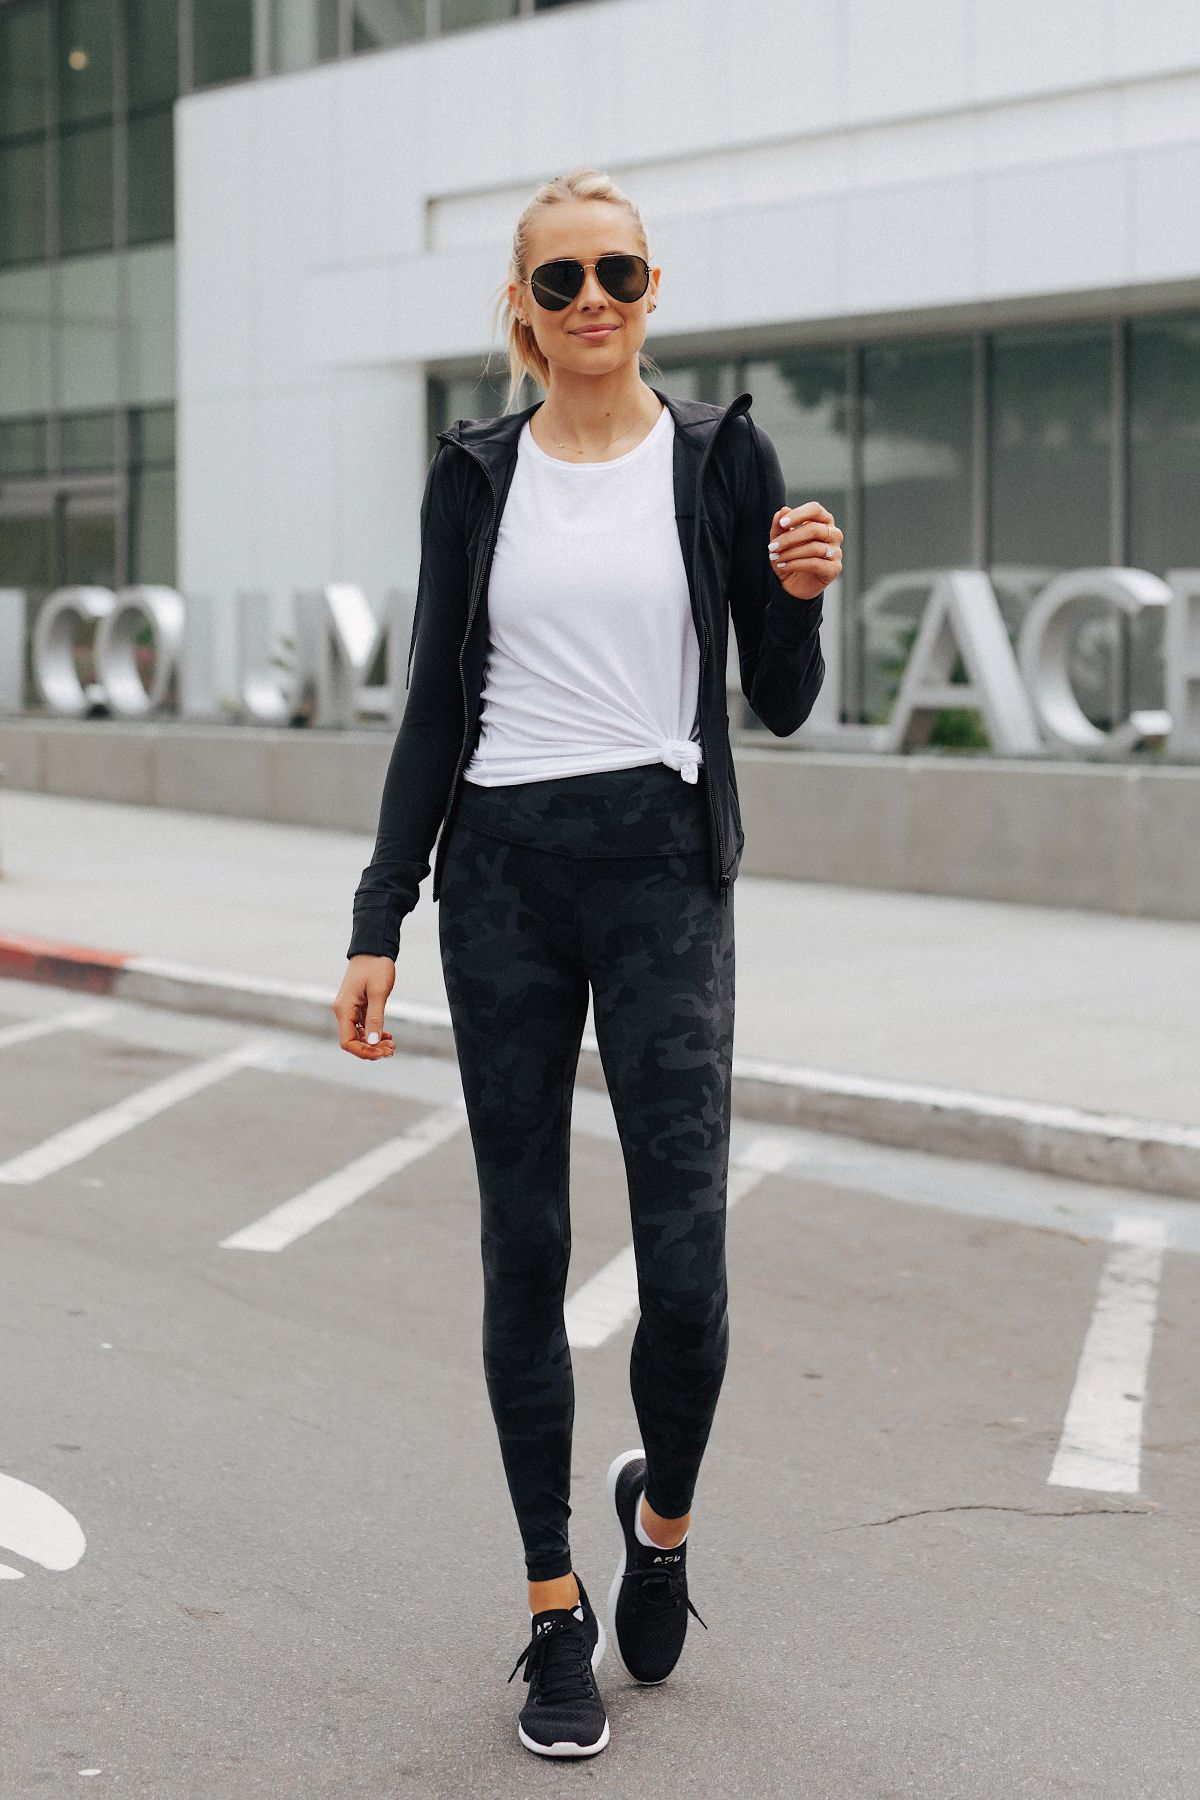 Fashion Jackson Wearing Lululemon Align Pants Black Camo Print White Top Black Jacket Apl Black Snea Athleisure Outfits Outfits With Leggings Lululemon Outfits